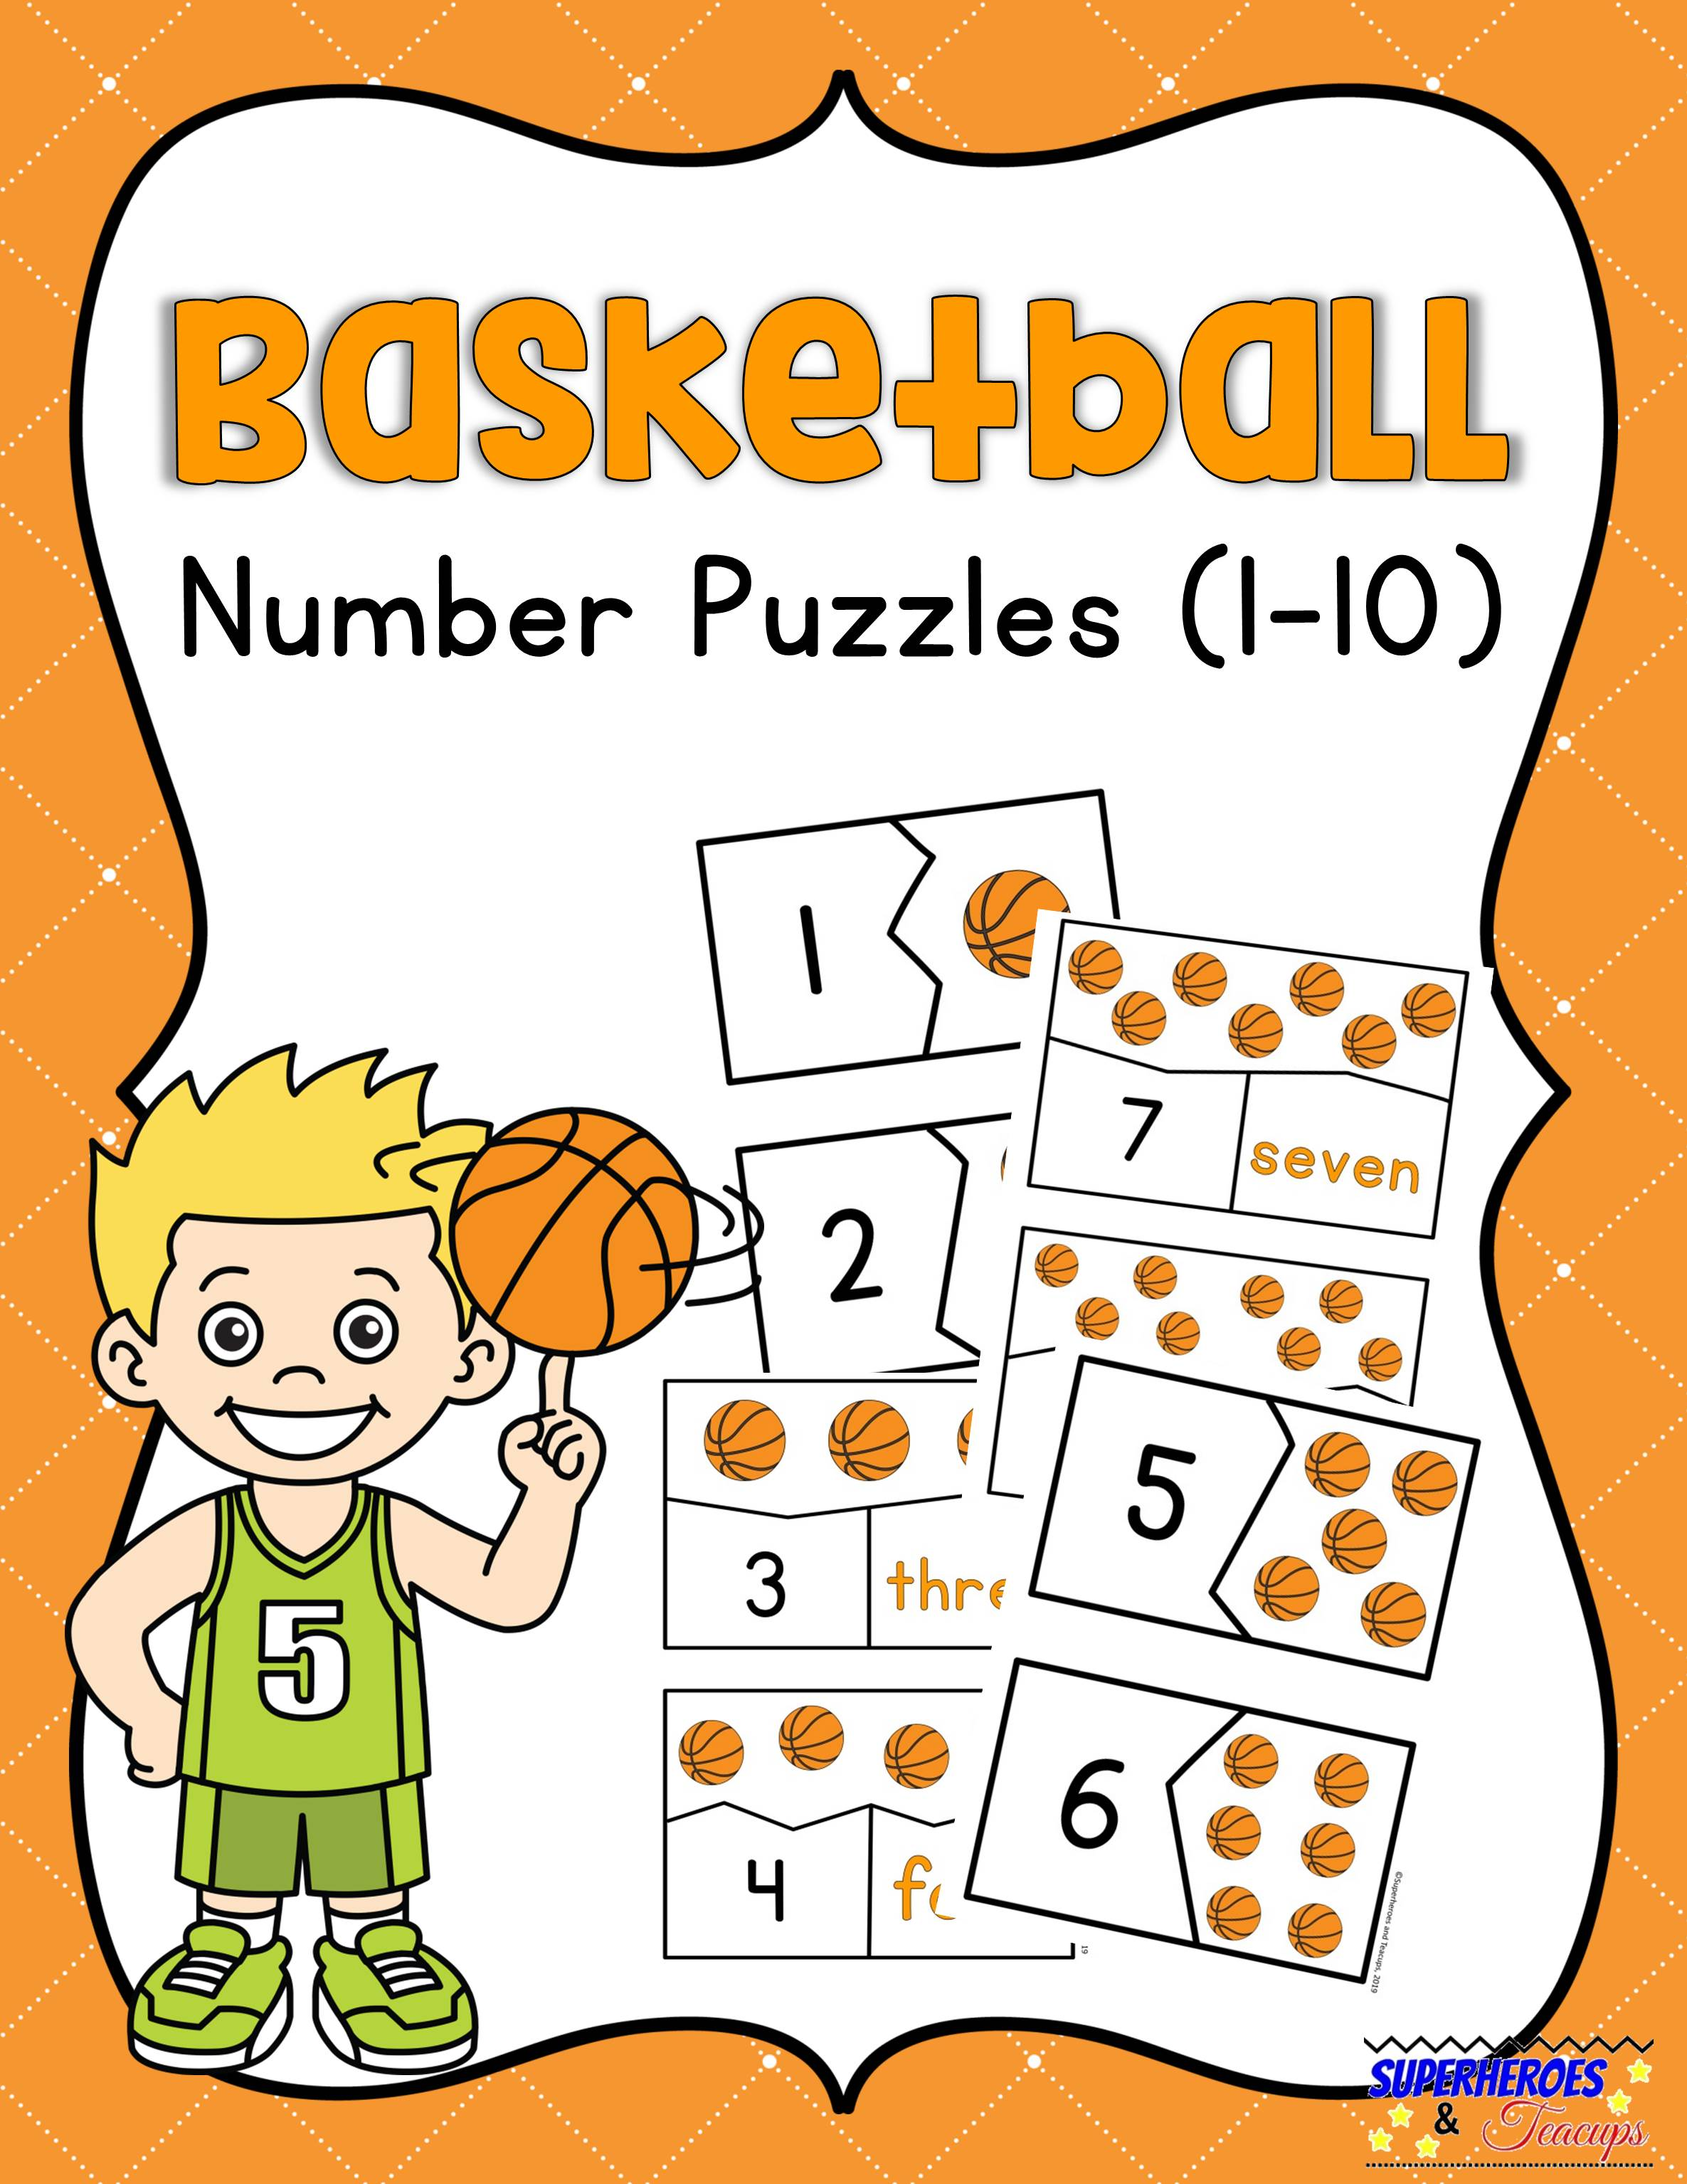 Basketball Number Puzzles Free Printable For Kids